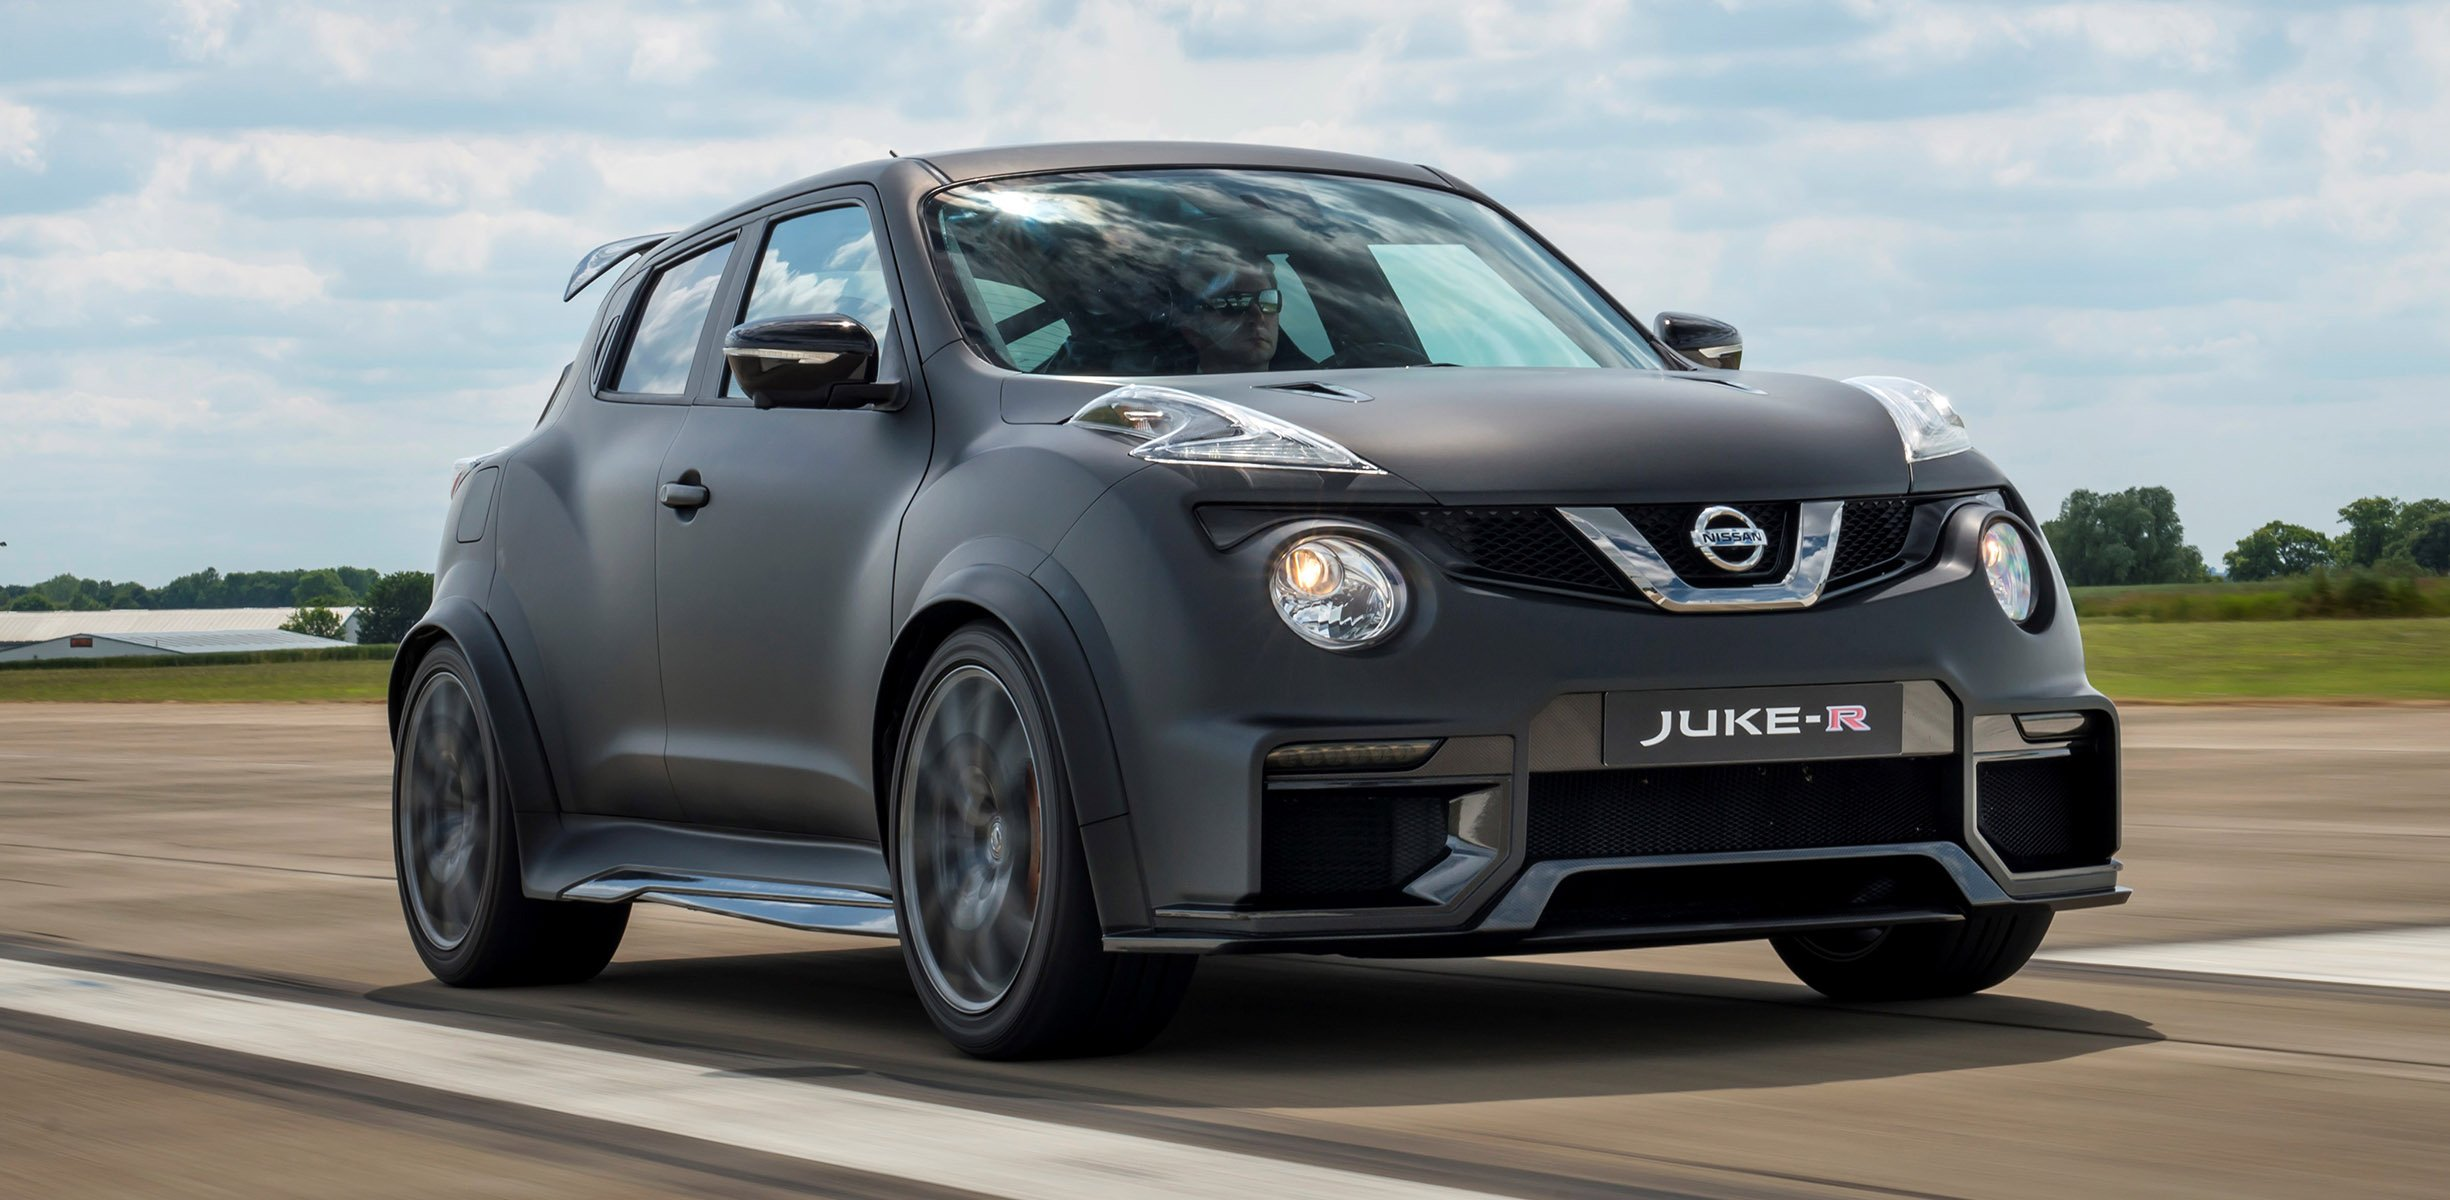 nissan juke r 2 0 unveiled with gt r nismo engine photos. Black Bedroom Furniture Sets. Home Design Ideas